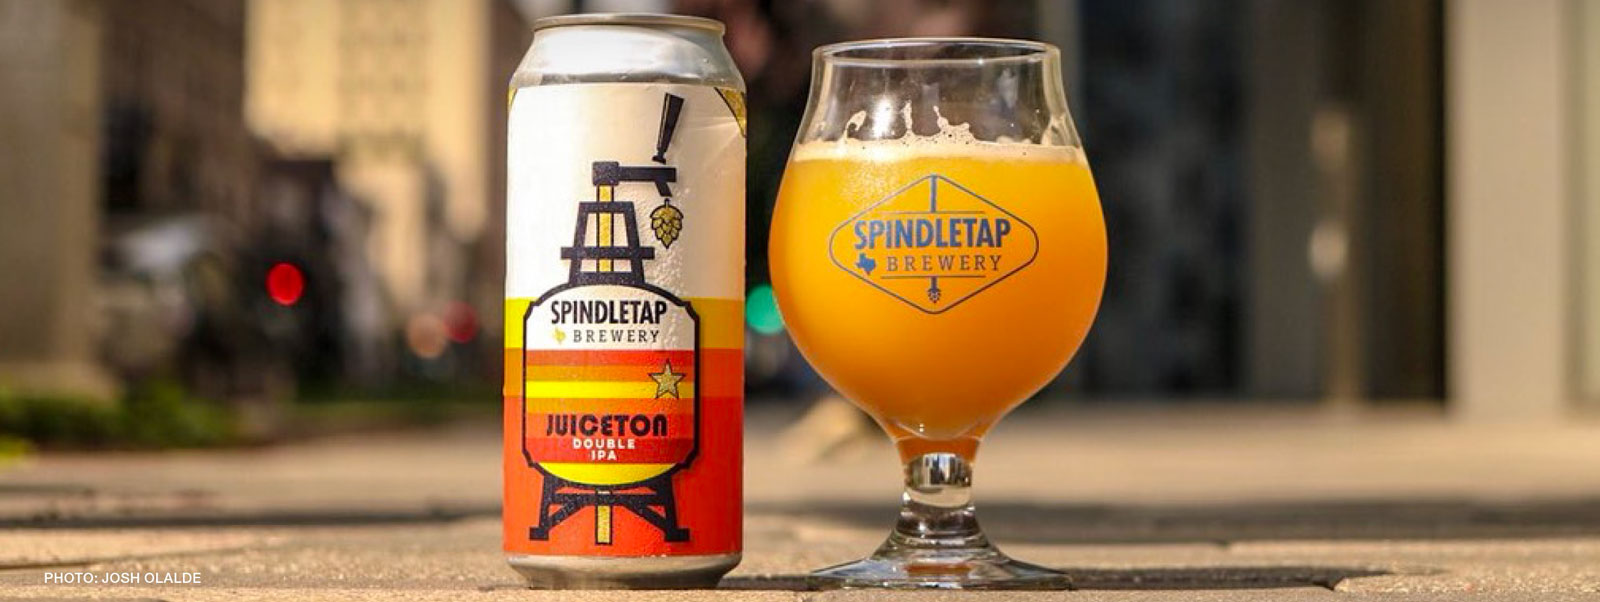 Houston Commercial Real Estate Market Insight craft breweries Spindletap - Juiceton Double IPA beer